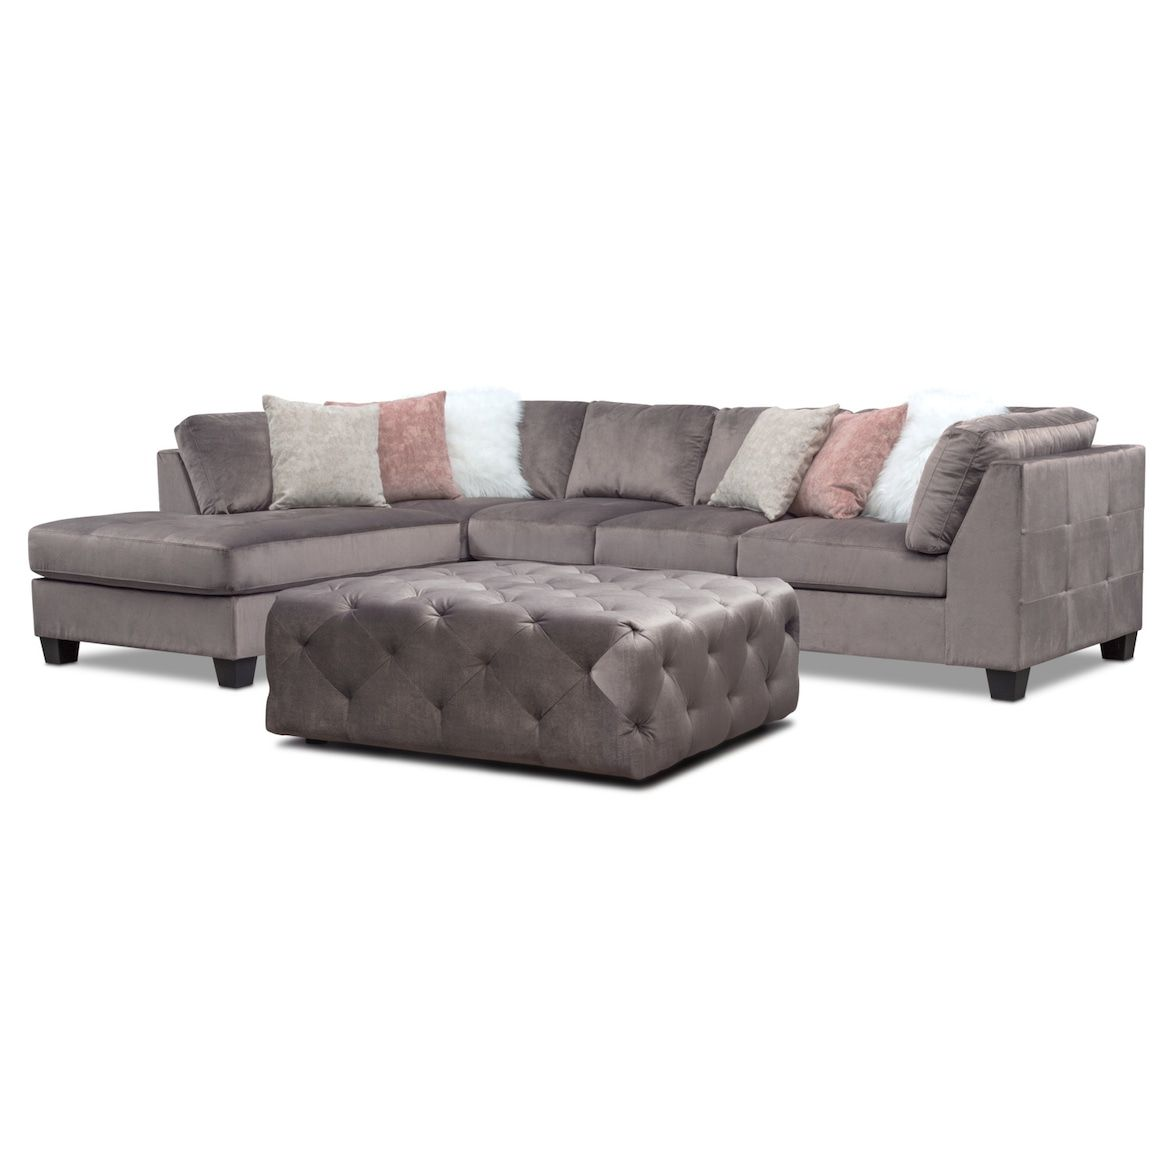 Best Mackenzie 2 Piece Sectional And Ottoman Set In 2019 400 x 300